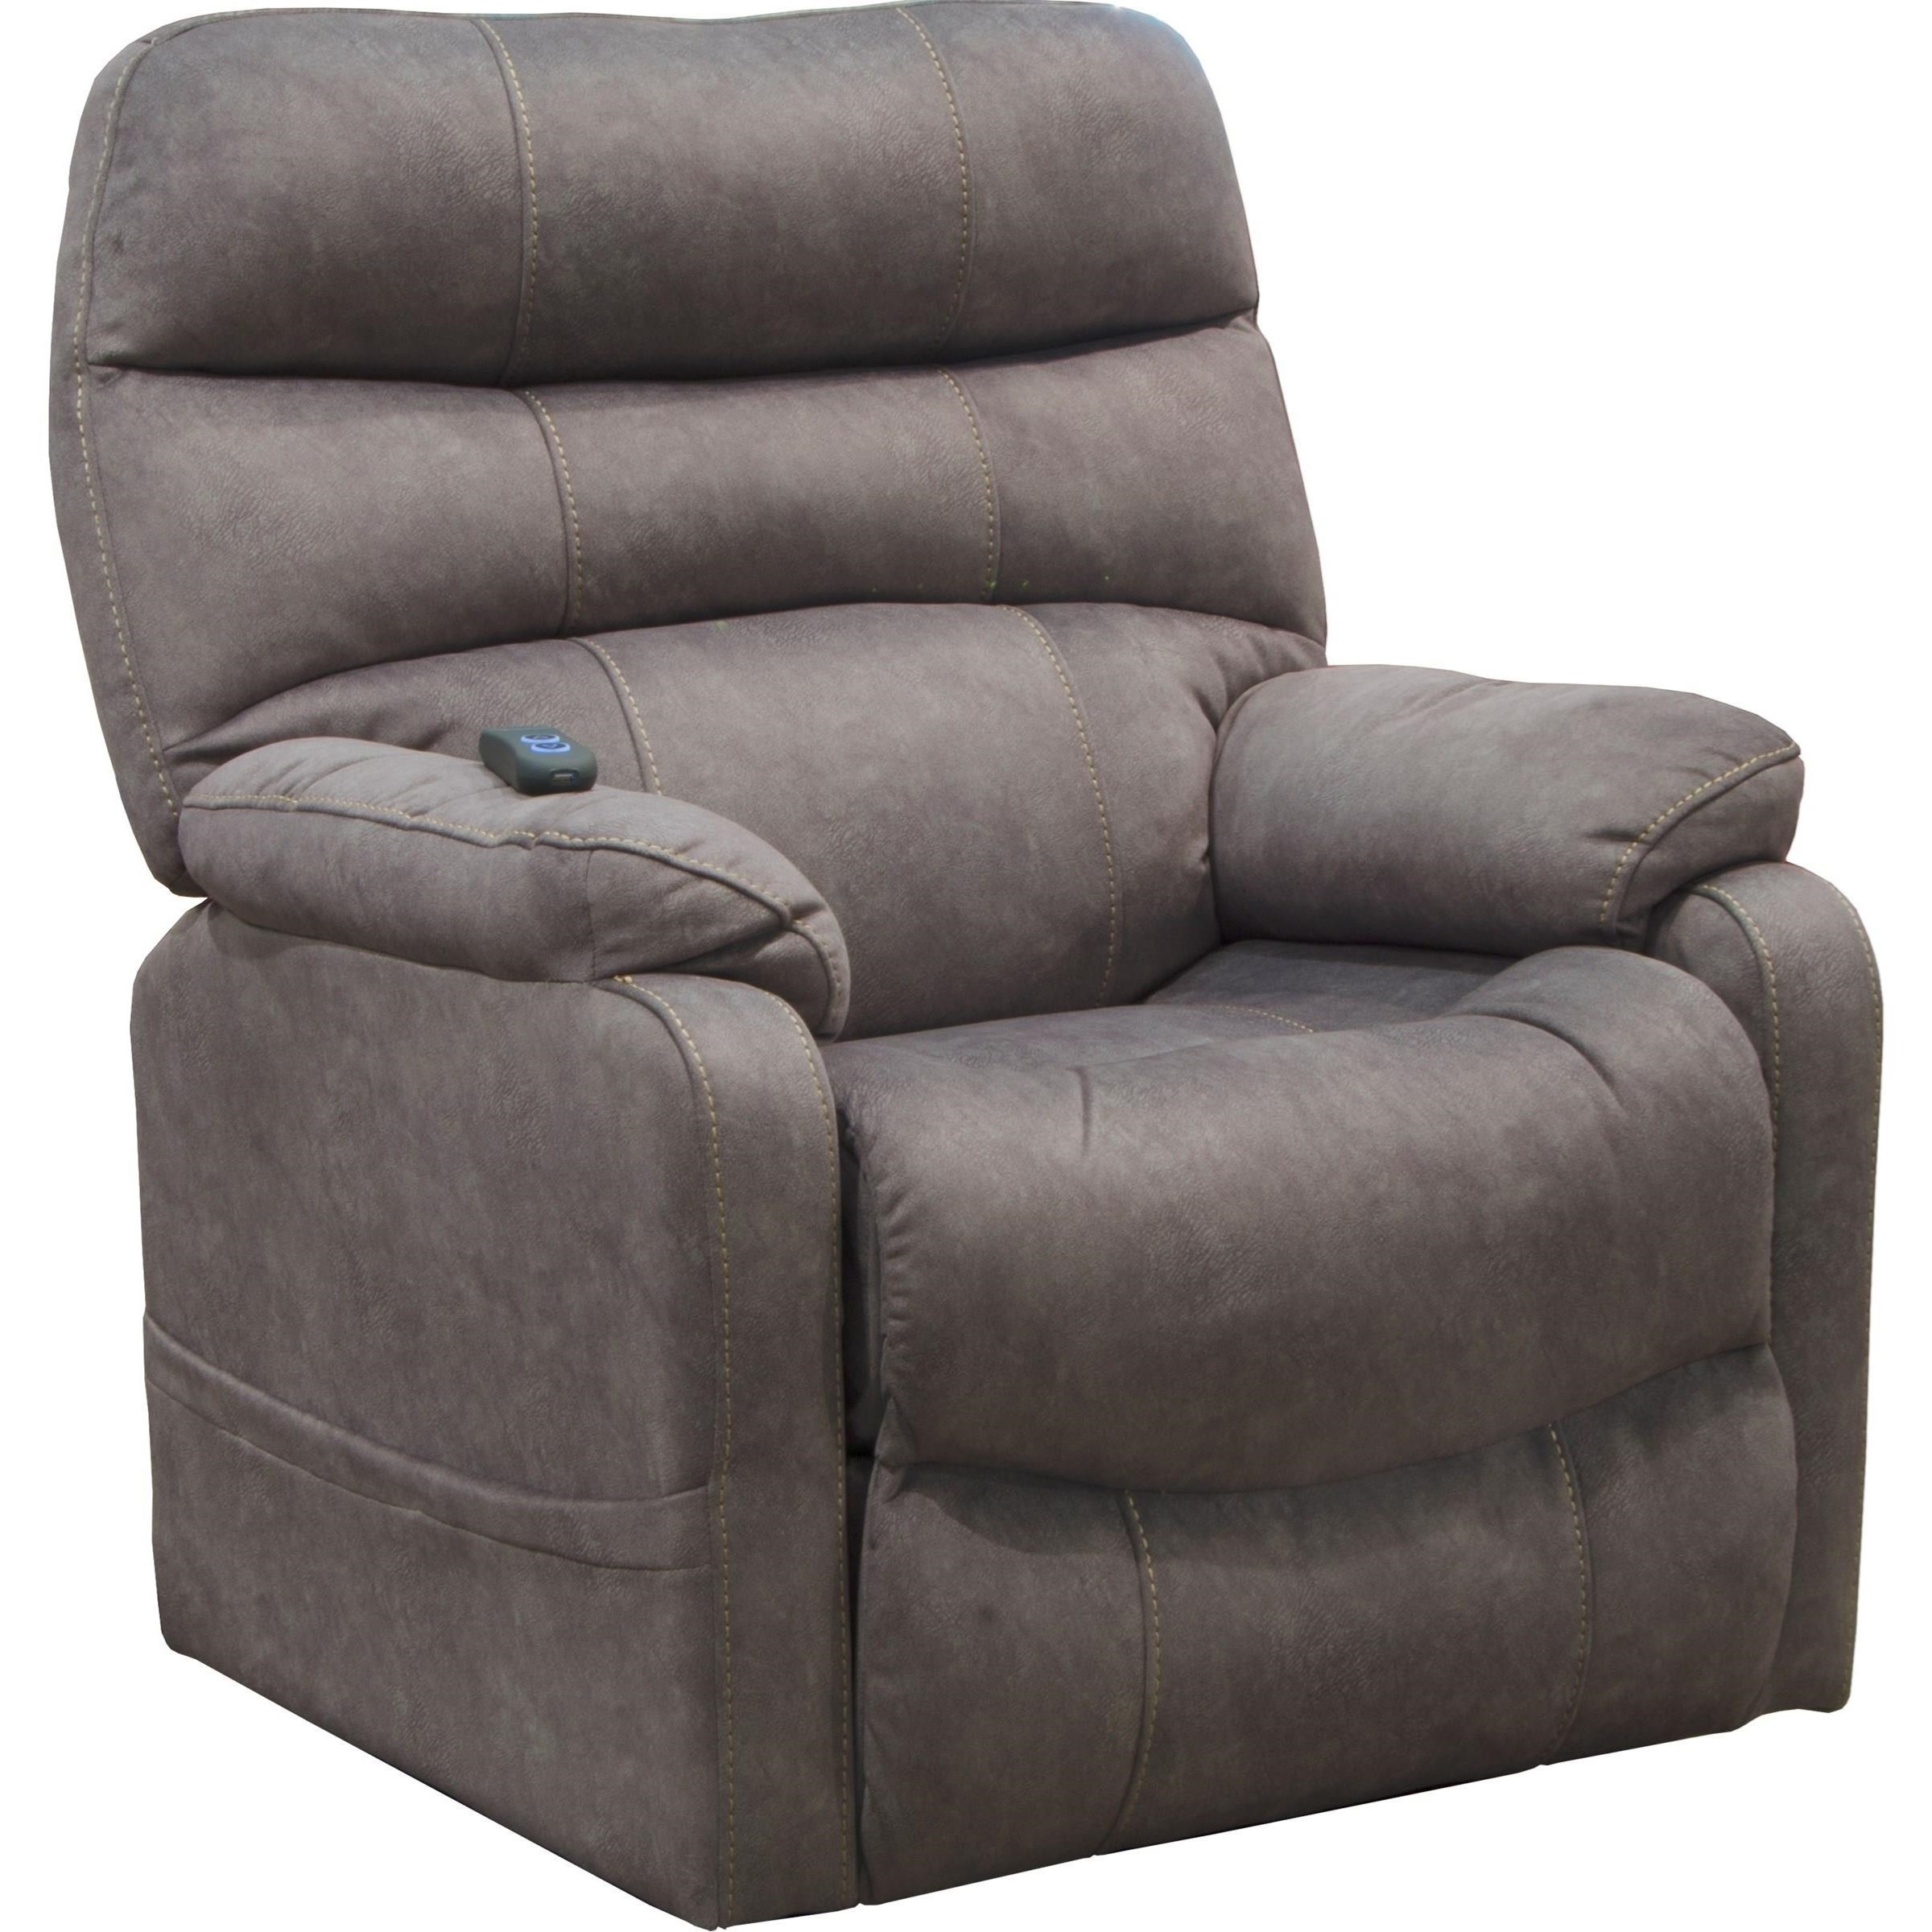 Buckley Power Lift Recliner by Catnapper at Northeast Factory Direct